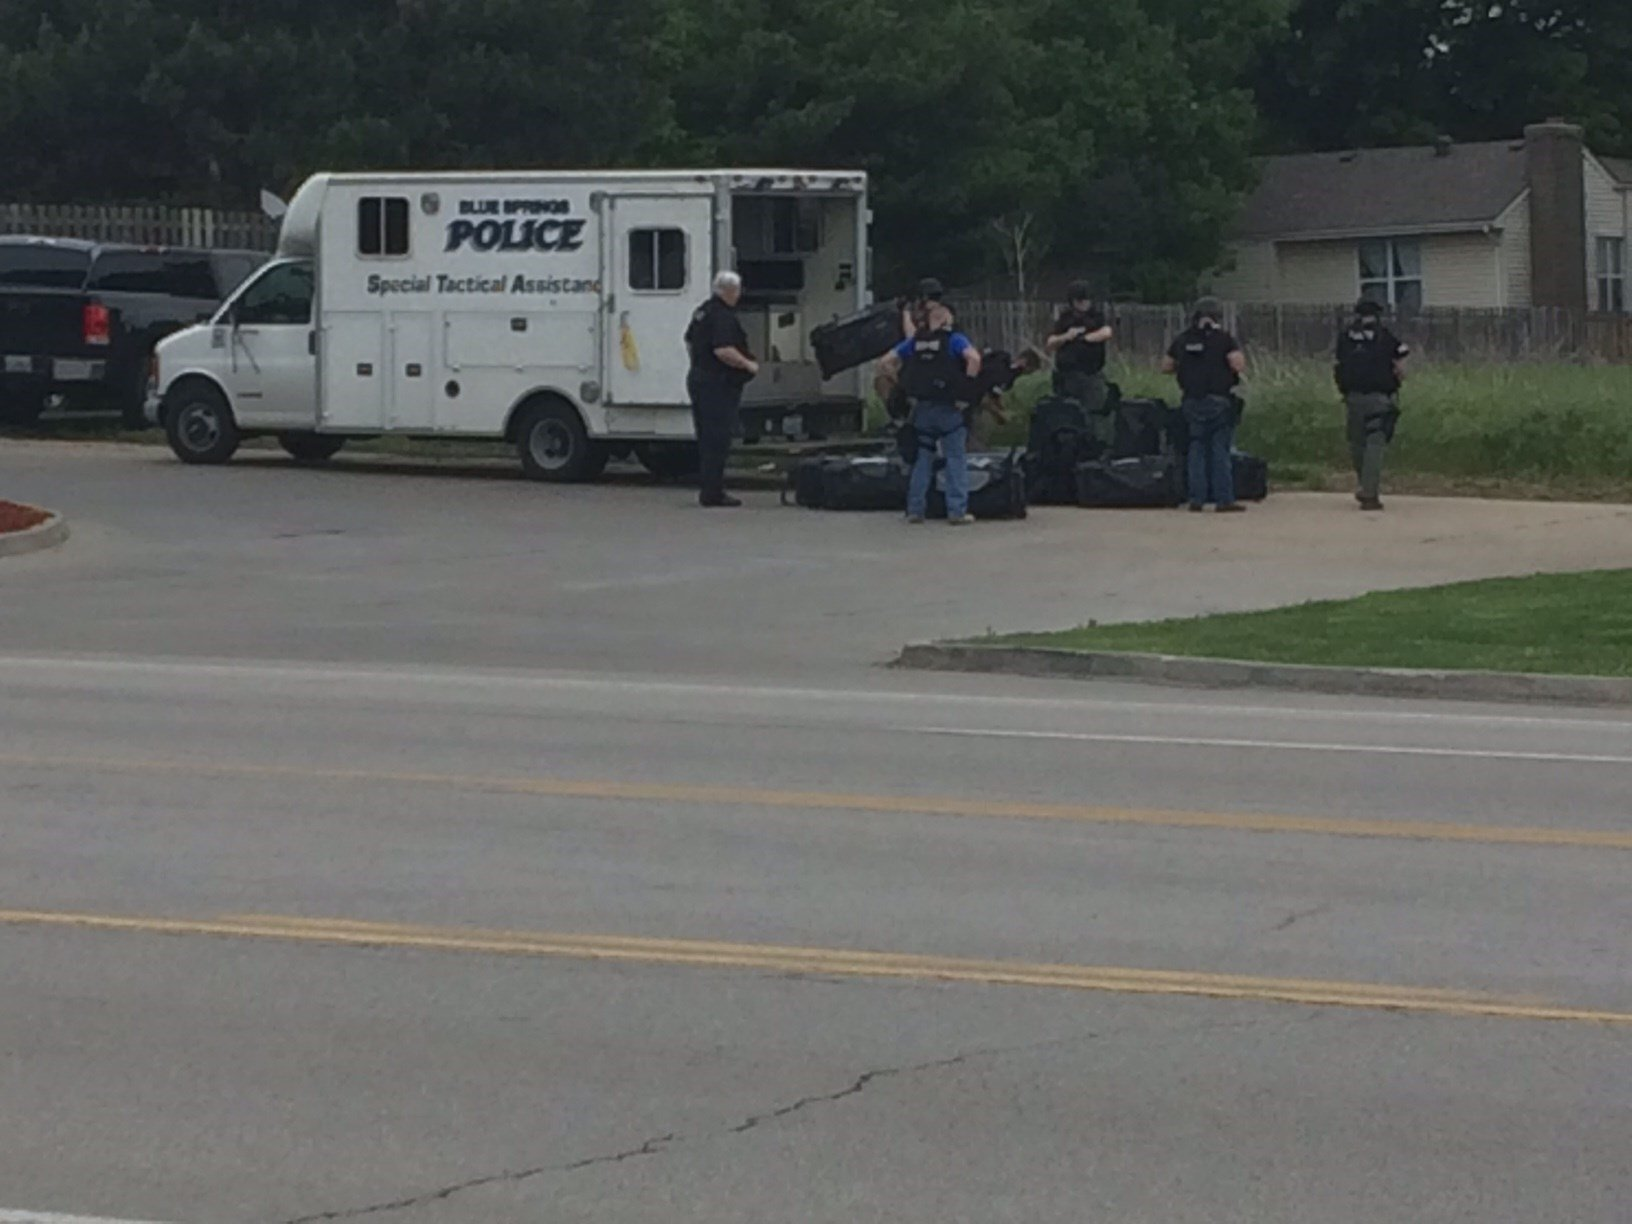 A lockdown at three schools has been lifted after gunshots rang out in a Blue Springs neighborhood during a home invasion. (Brett Akagi/KCTV5 News)